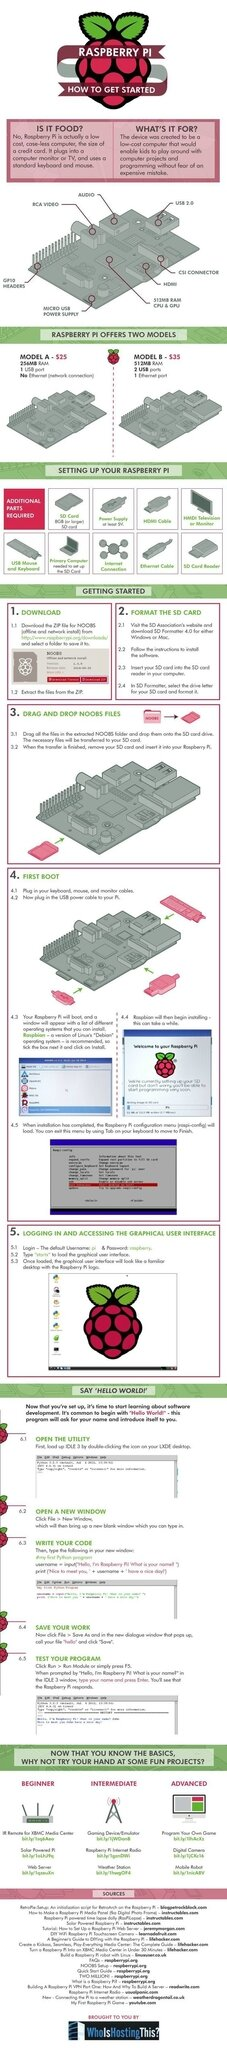 raspberry pi getting started